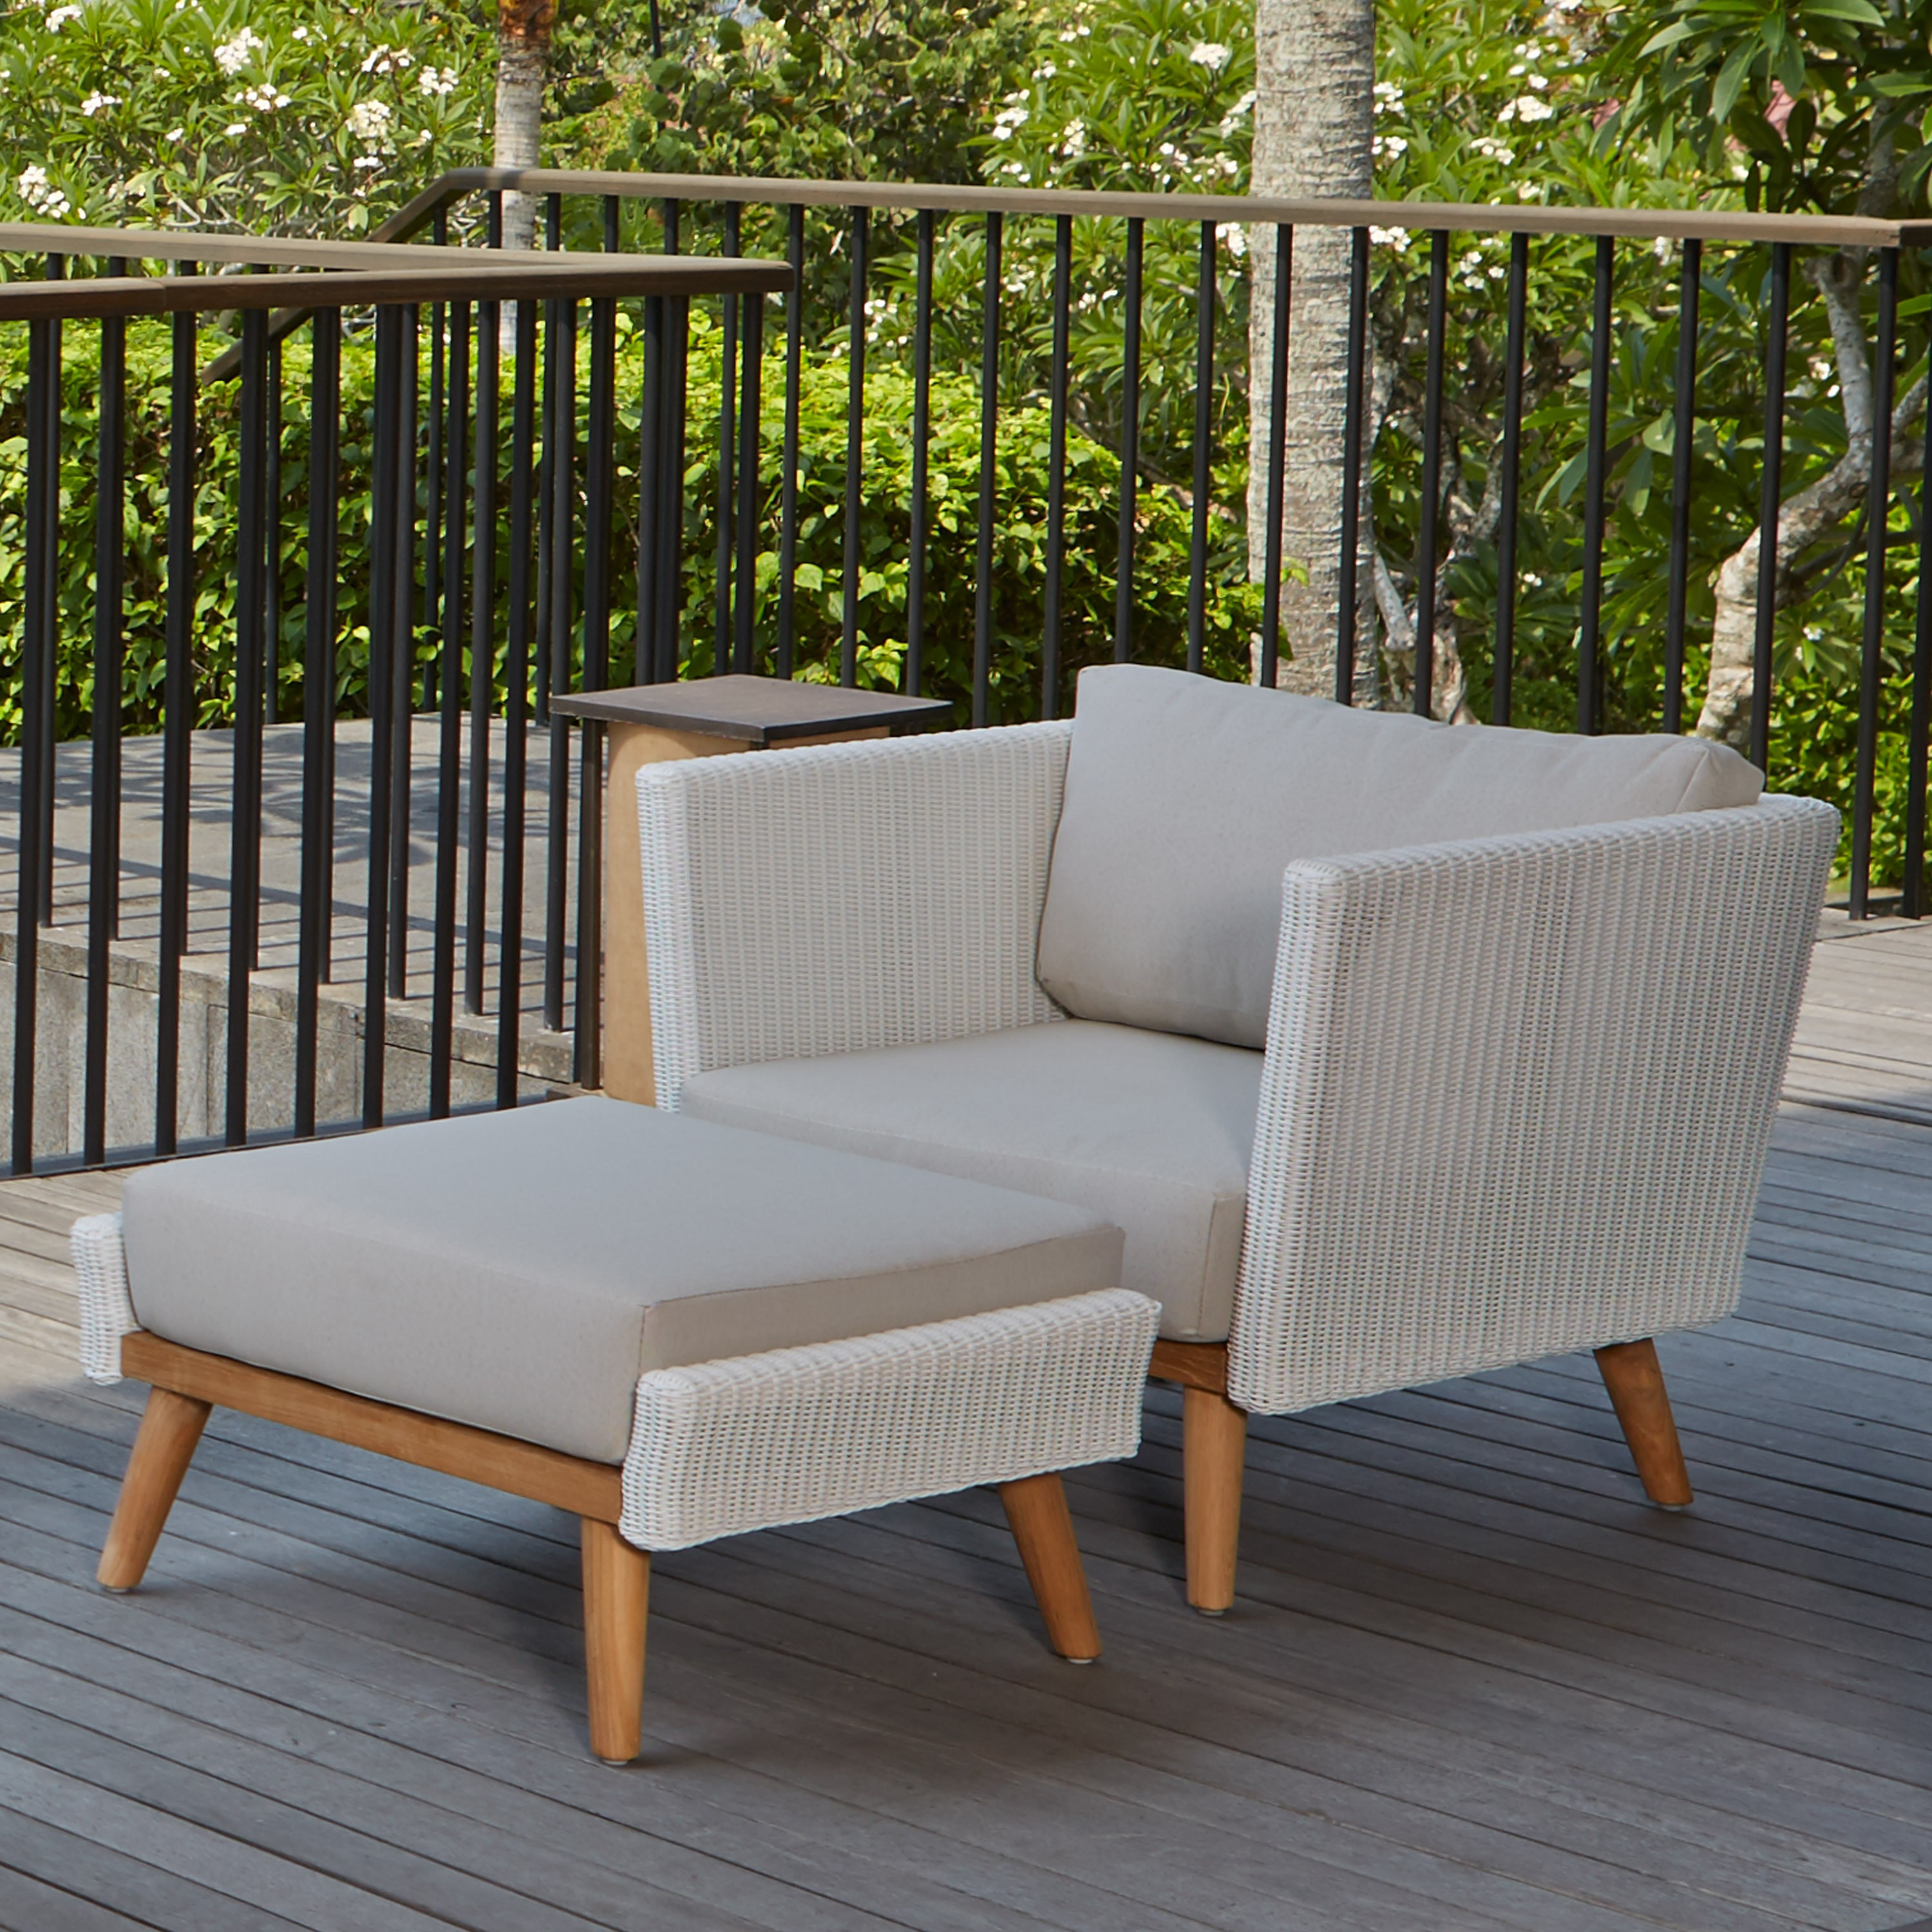 Discount Furniture Stores In Charlotte Nc